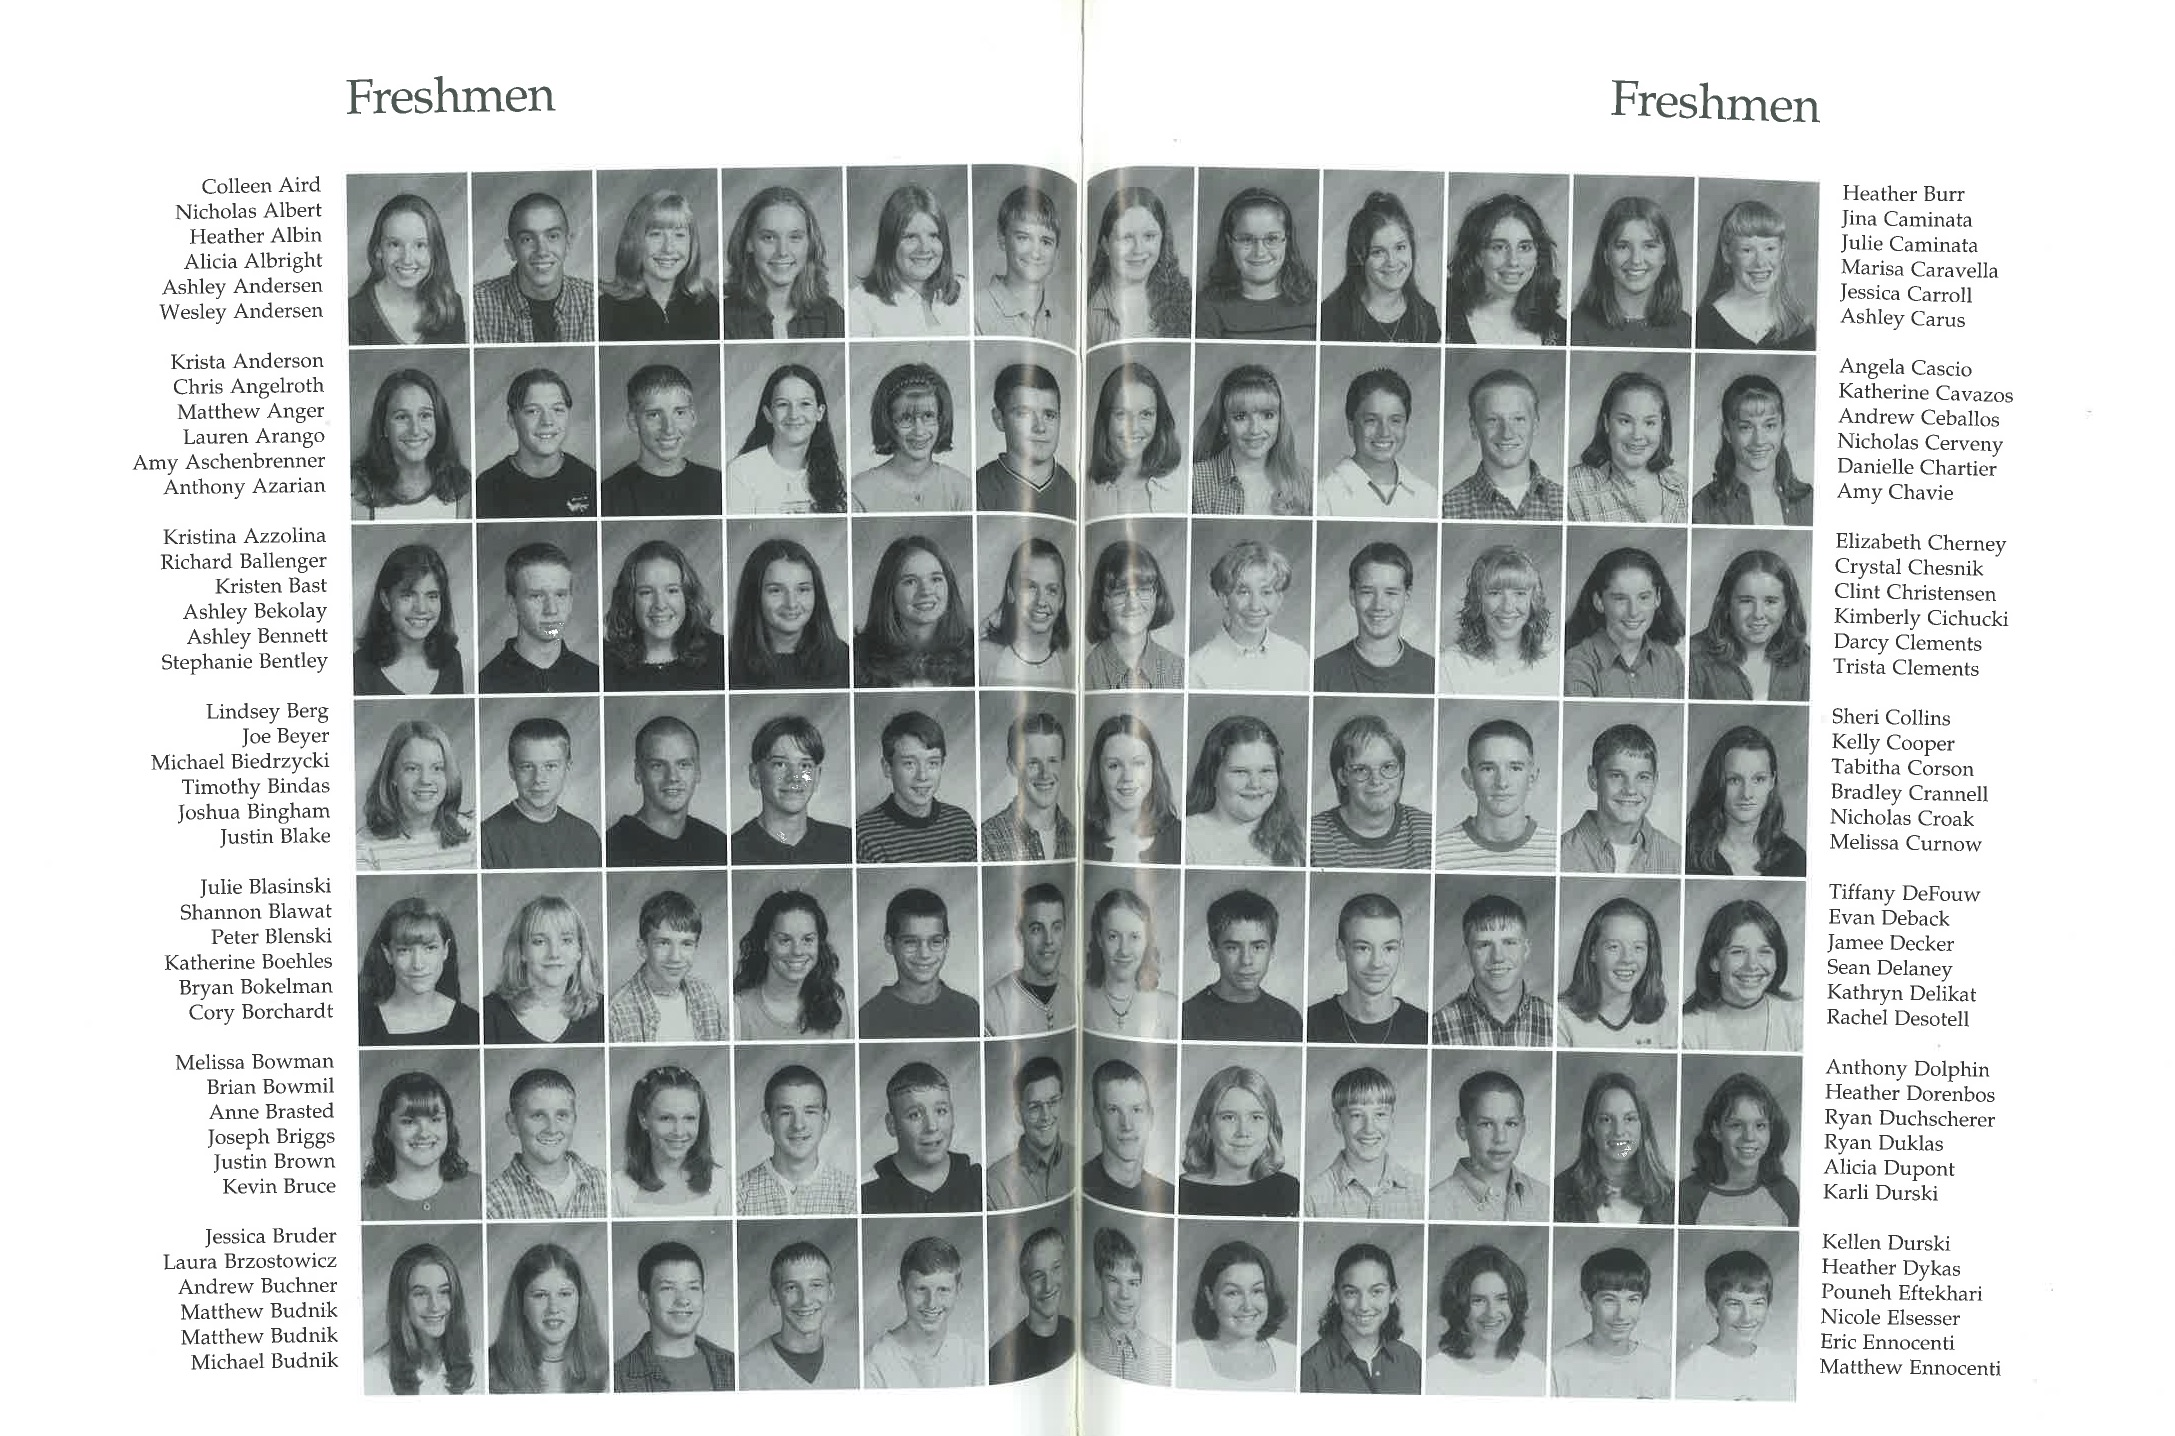 2000_Yearbook_35.jpg